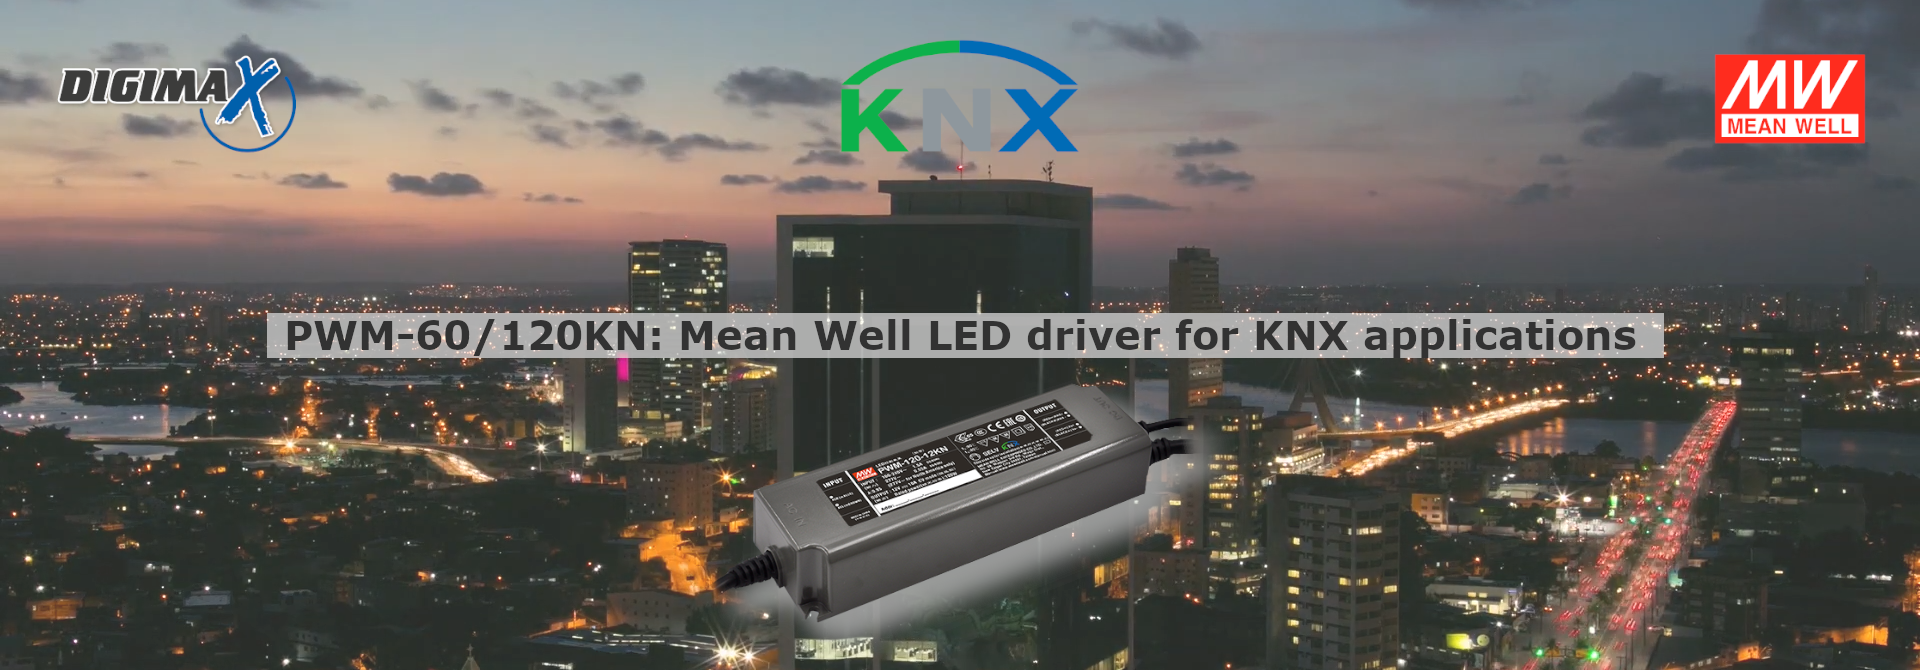 PWM-60/120KN: Mean Well LED driver for KNX applications